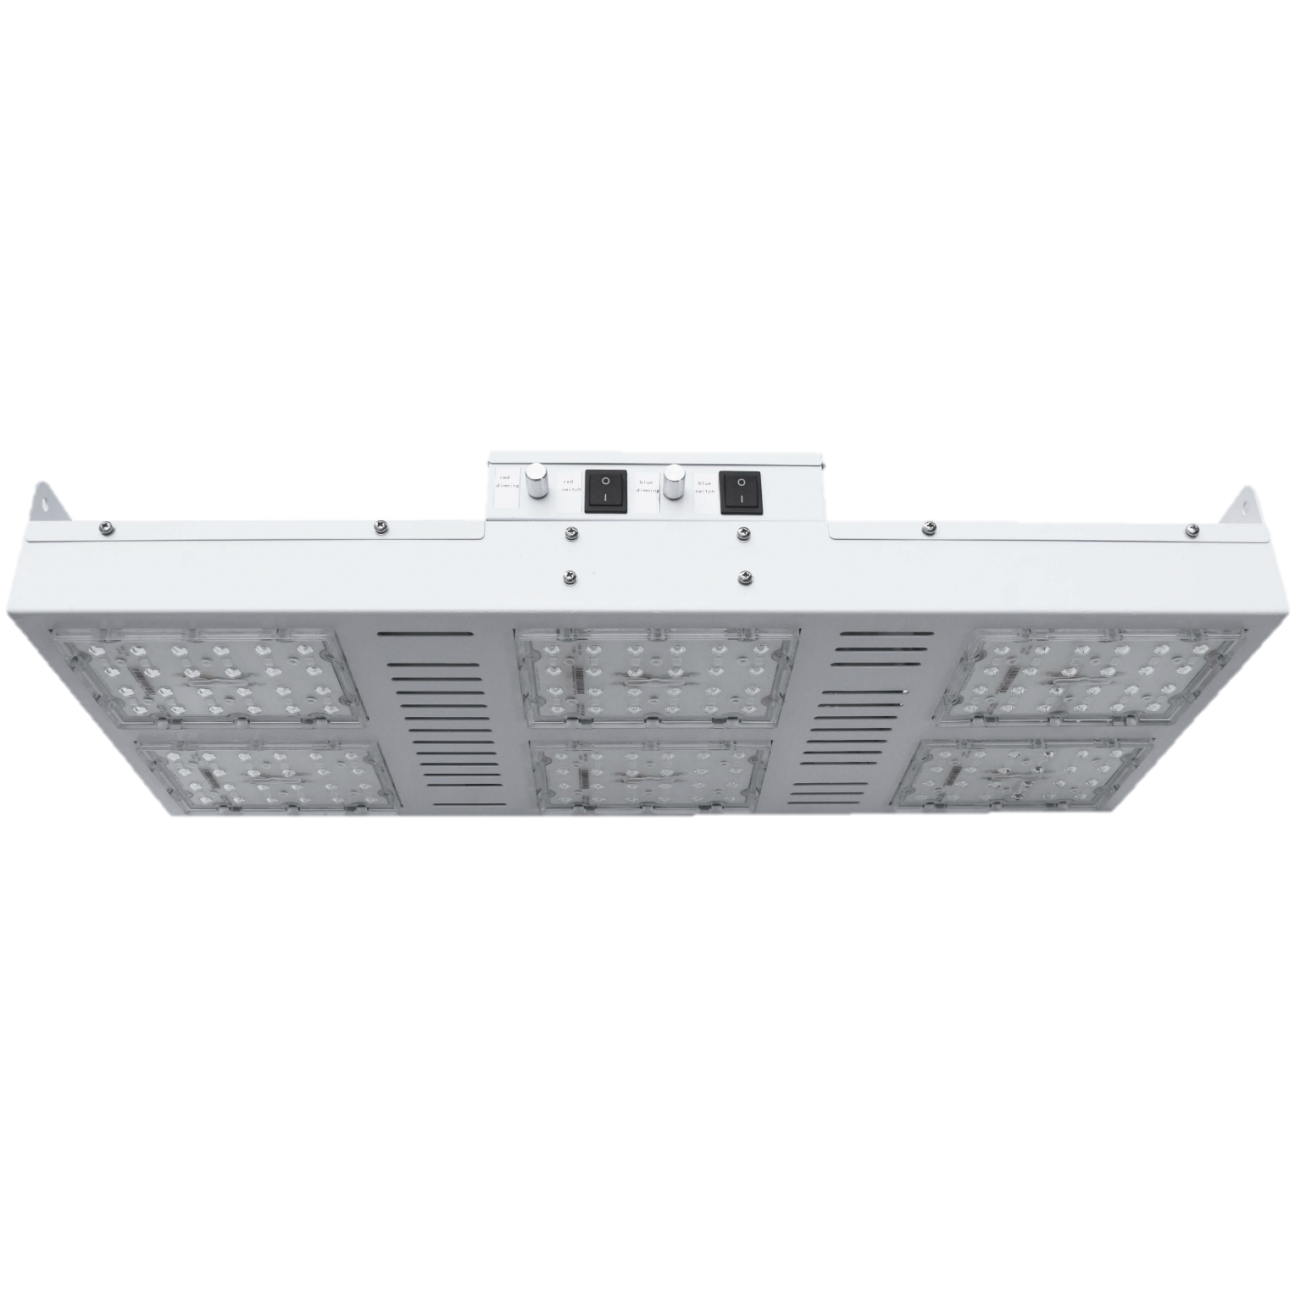 LED Plant Full Spectrum Light Fixture PG42